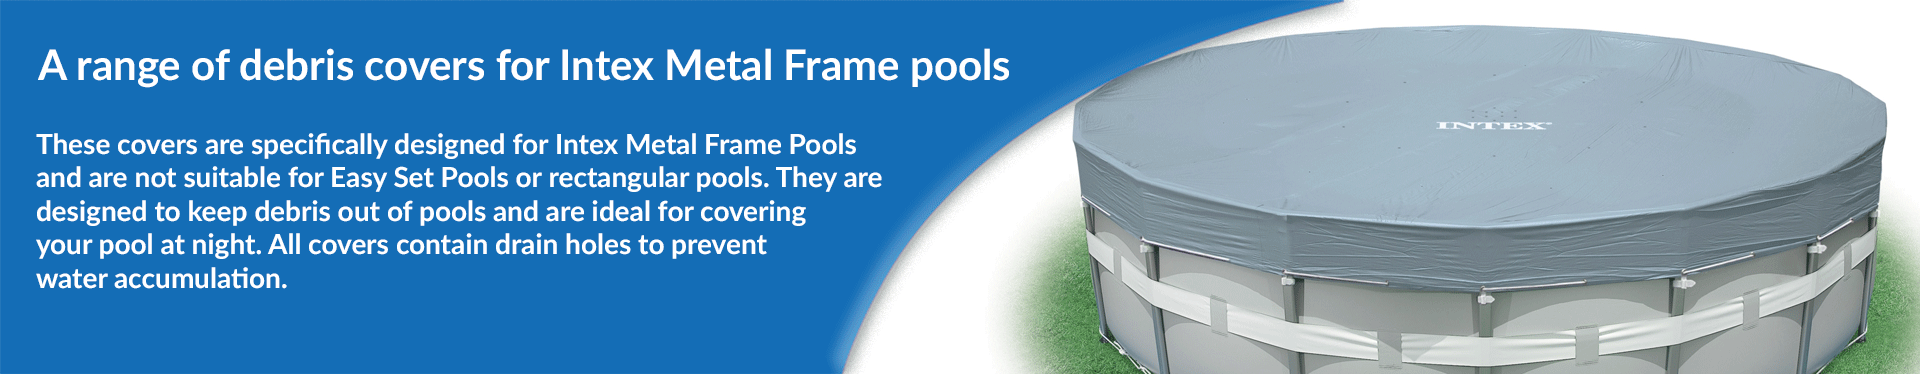 Intex Metal Frame Pool Covers